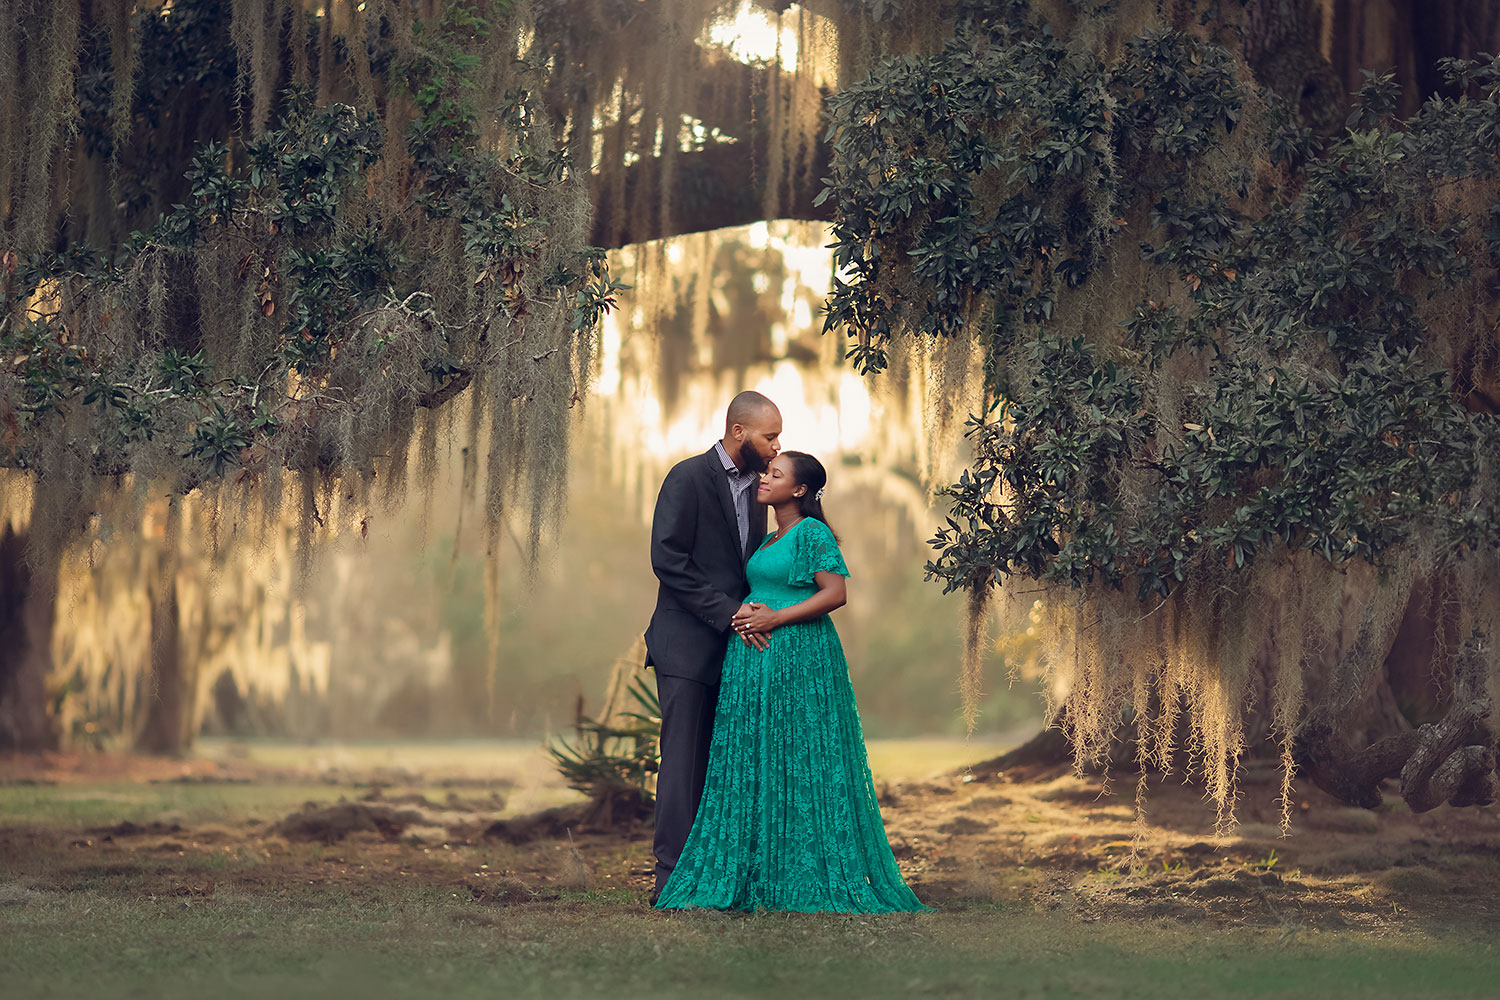 New Orleans maternity session under oak trees at sunset